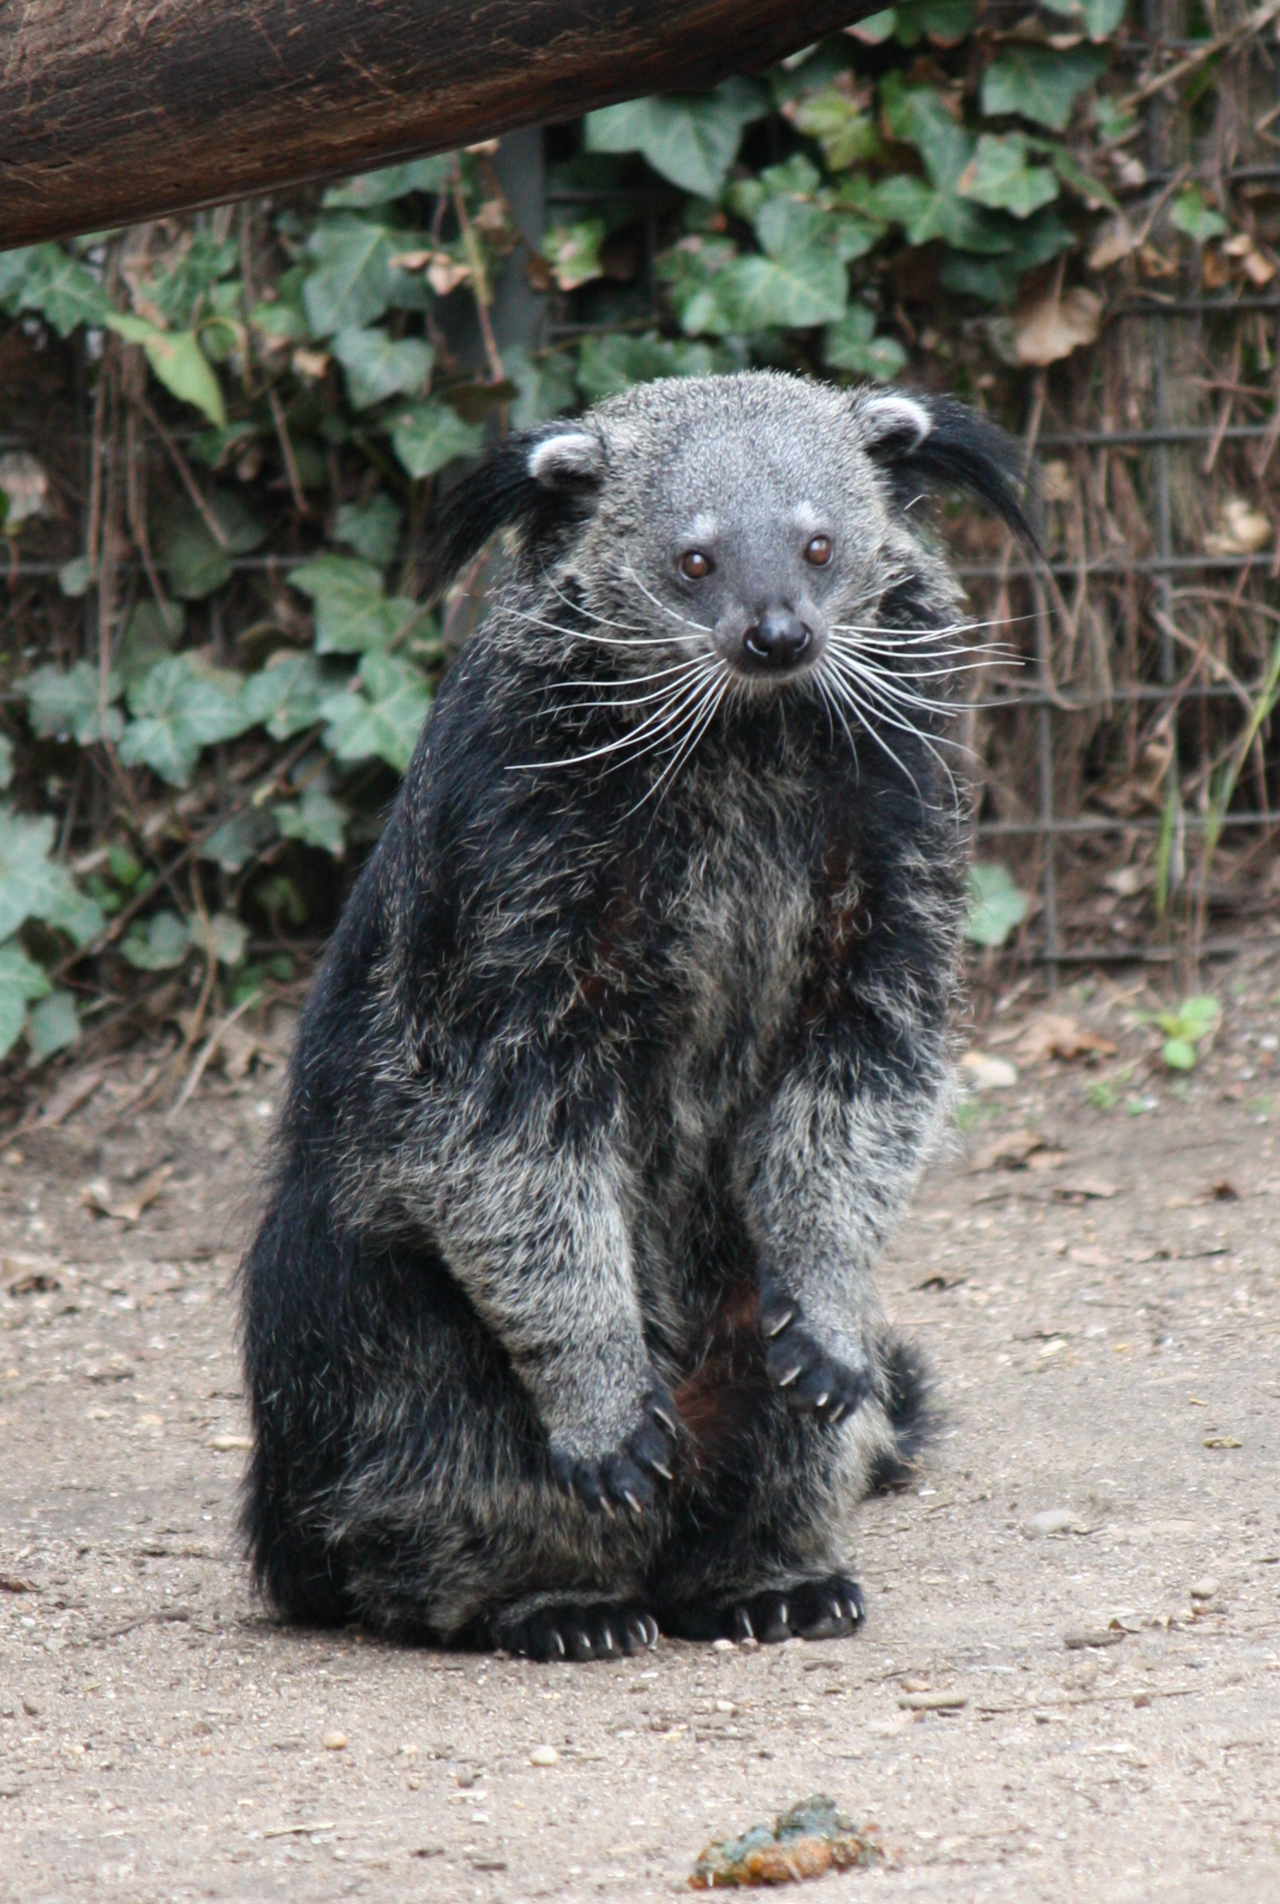 The binturong Arctictis binturong also known as bearcat is a